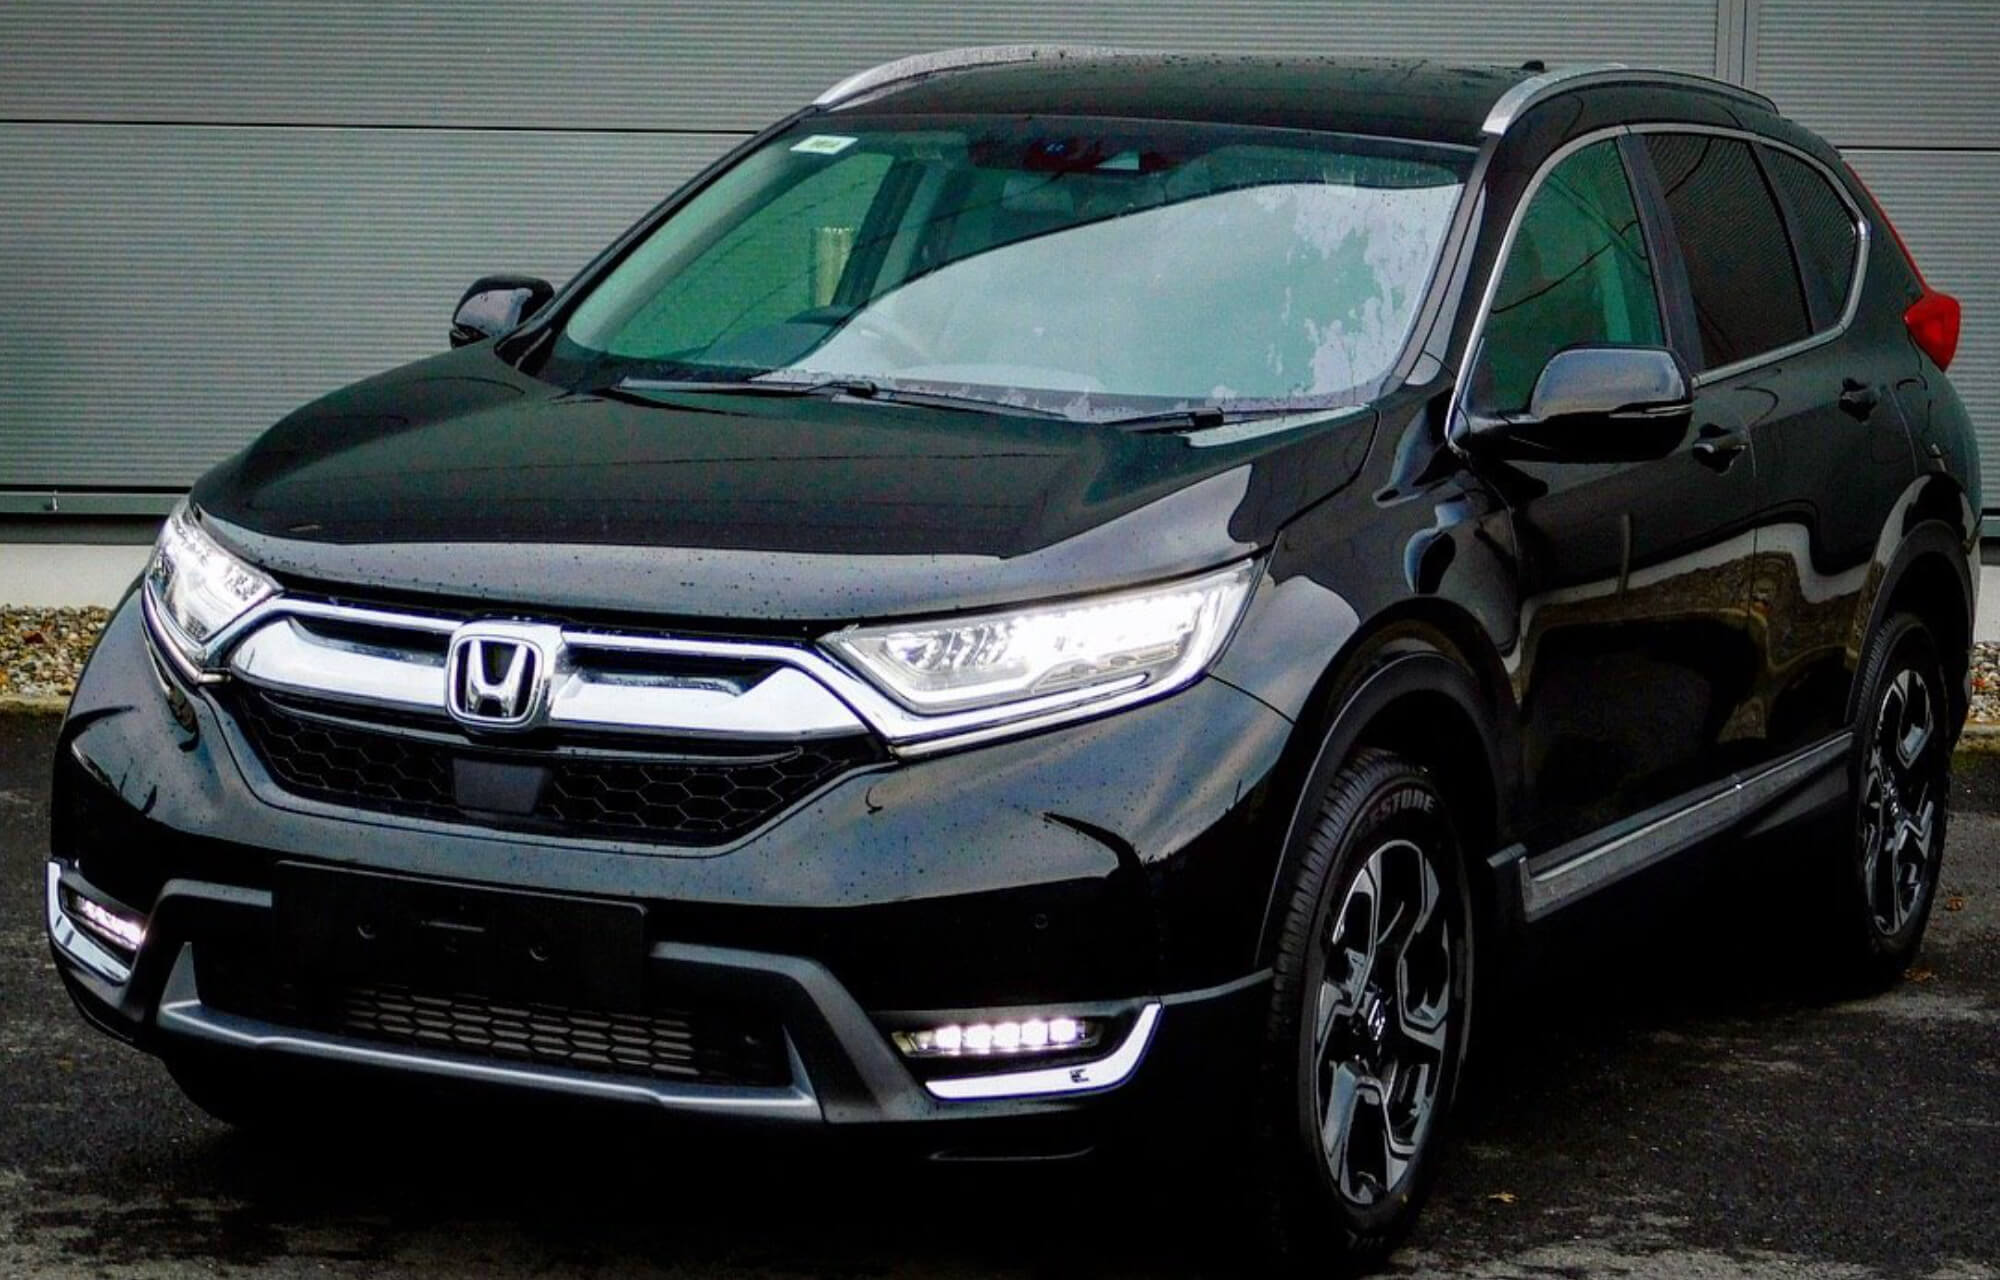 The first CR-V Elegance gets delivered at Fitzpatrick's Garage